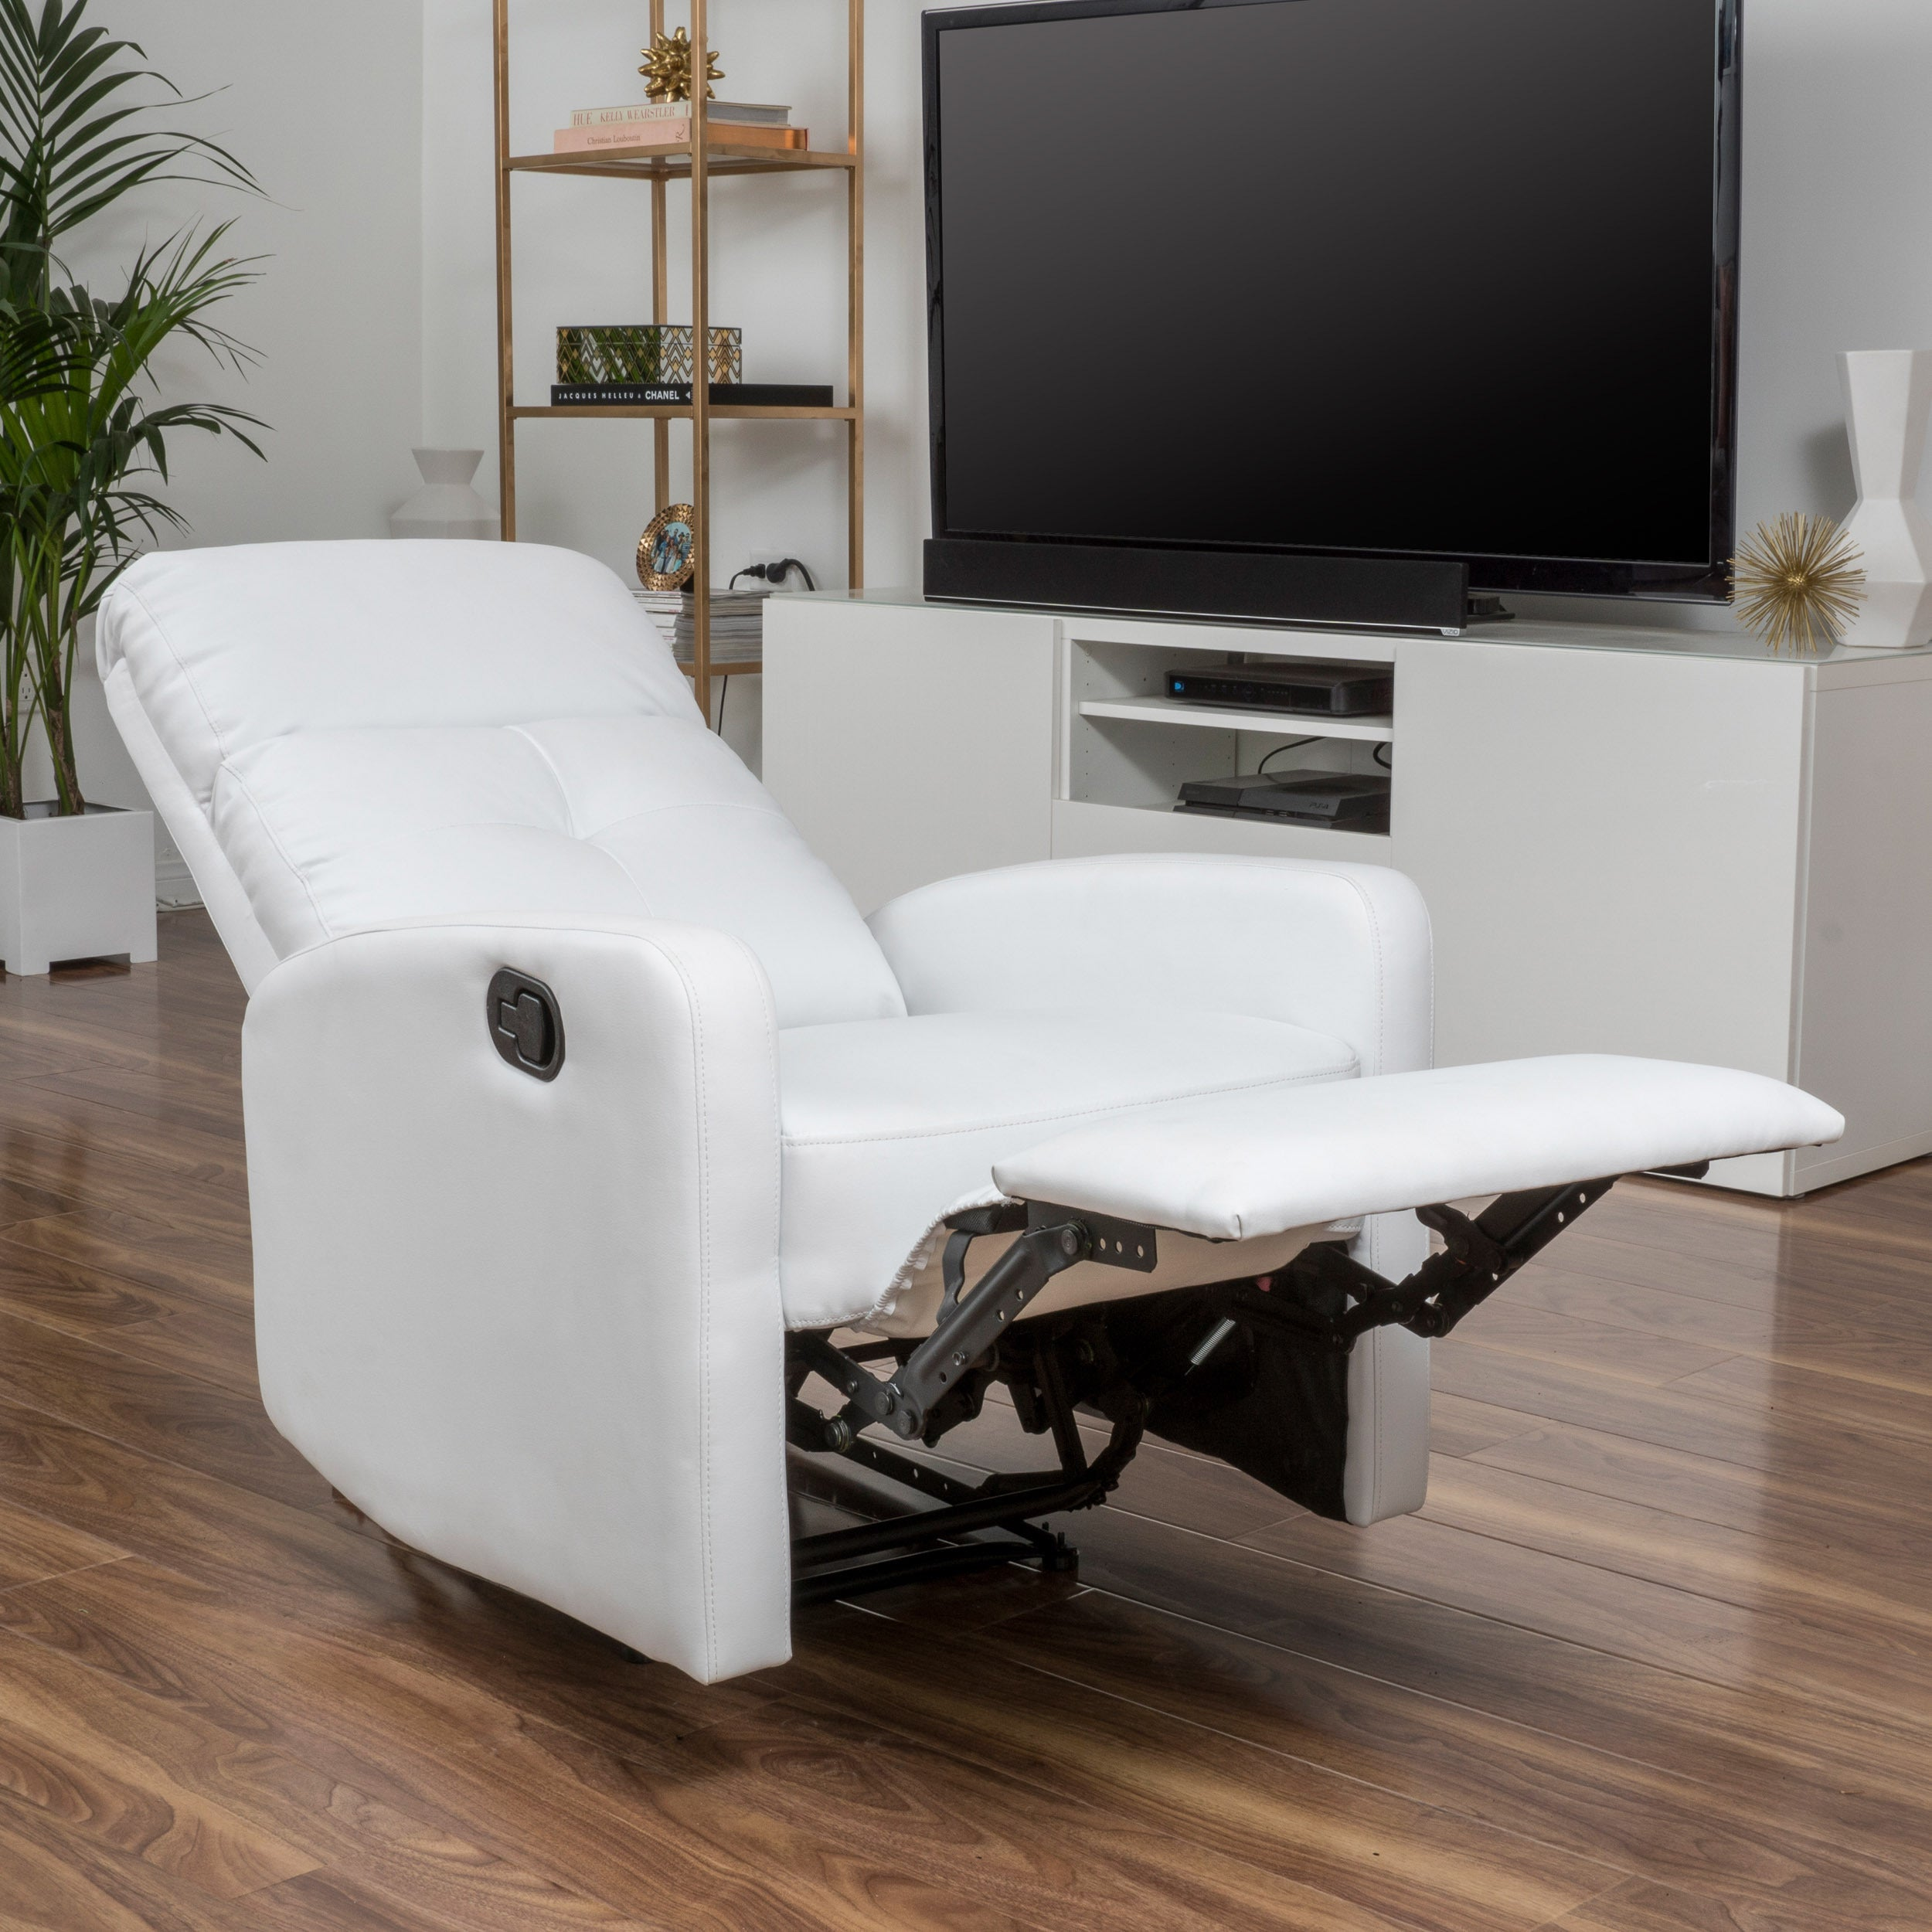 Samedi PU Leather Recliner Club Chair By Christopher Knight Home   Free  Shipping Today   Overstock   18108484